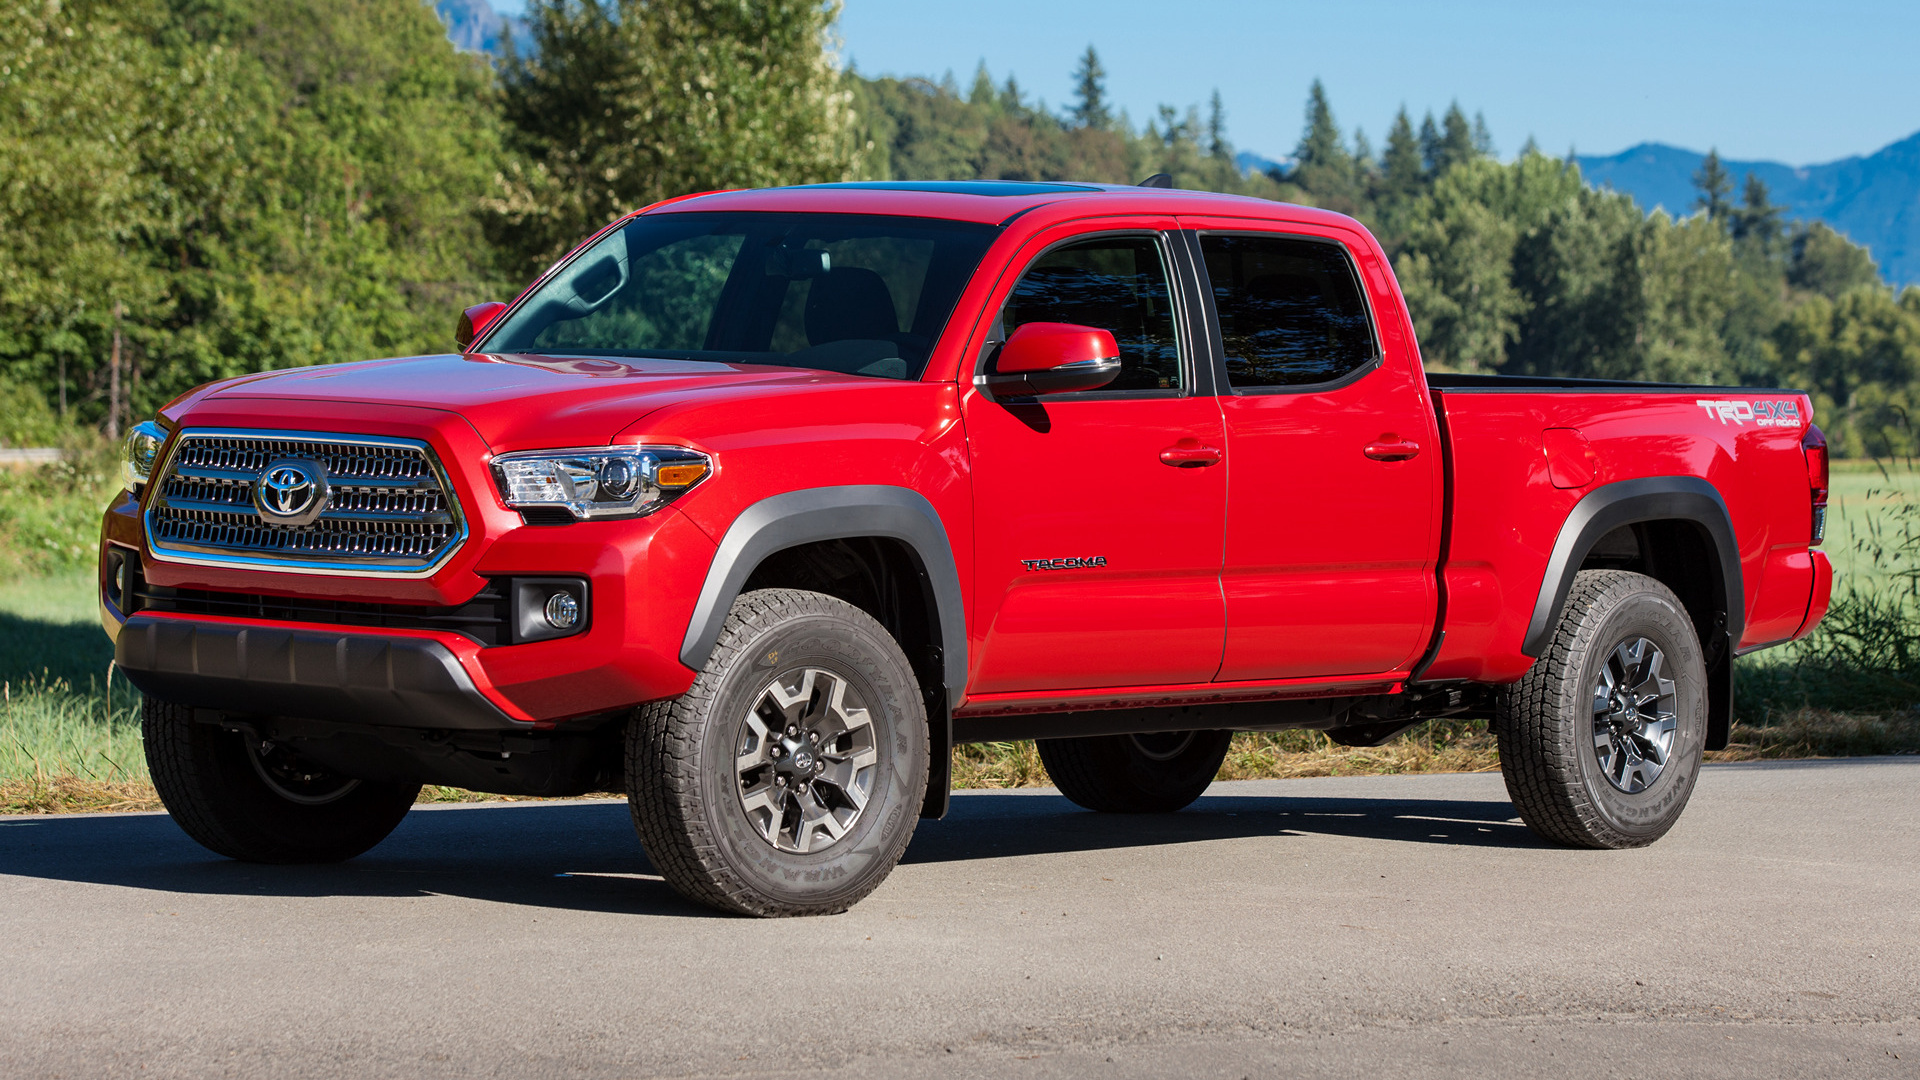 toyota tacoma trd off road double cab 2016 wallpapers and hd images. Black Bedroom Furniture Sets. Home Design Ideas